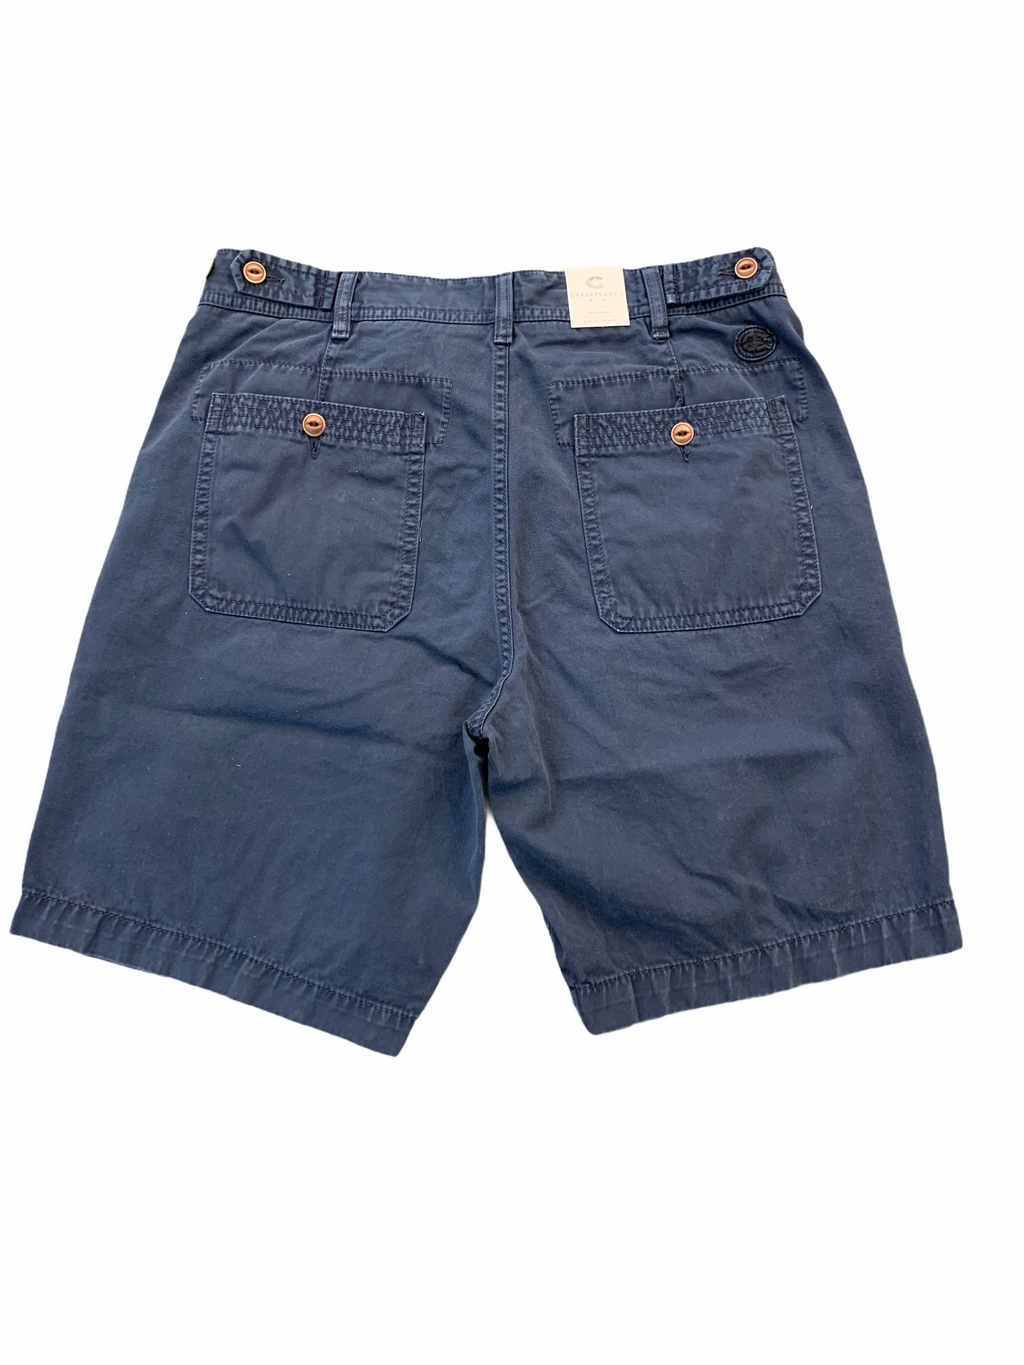 Short union navy blue